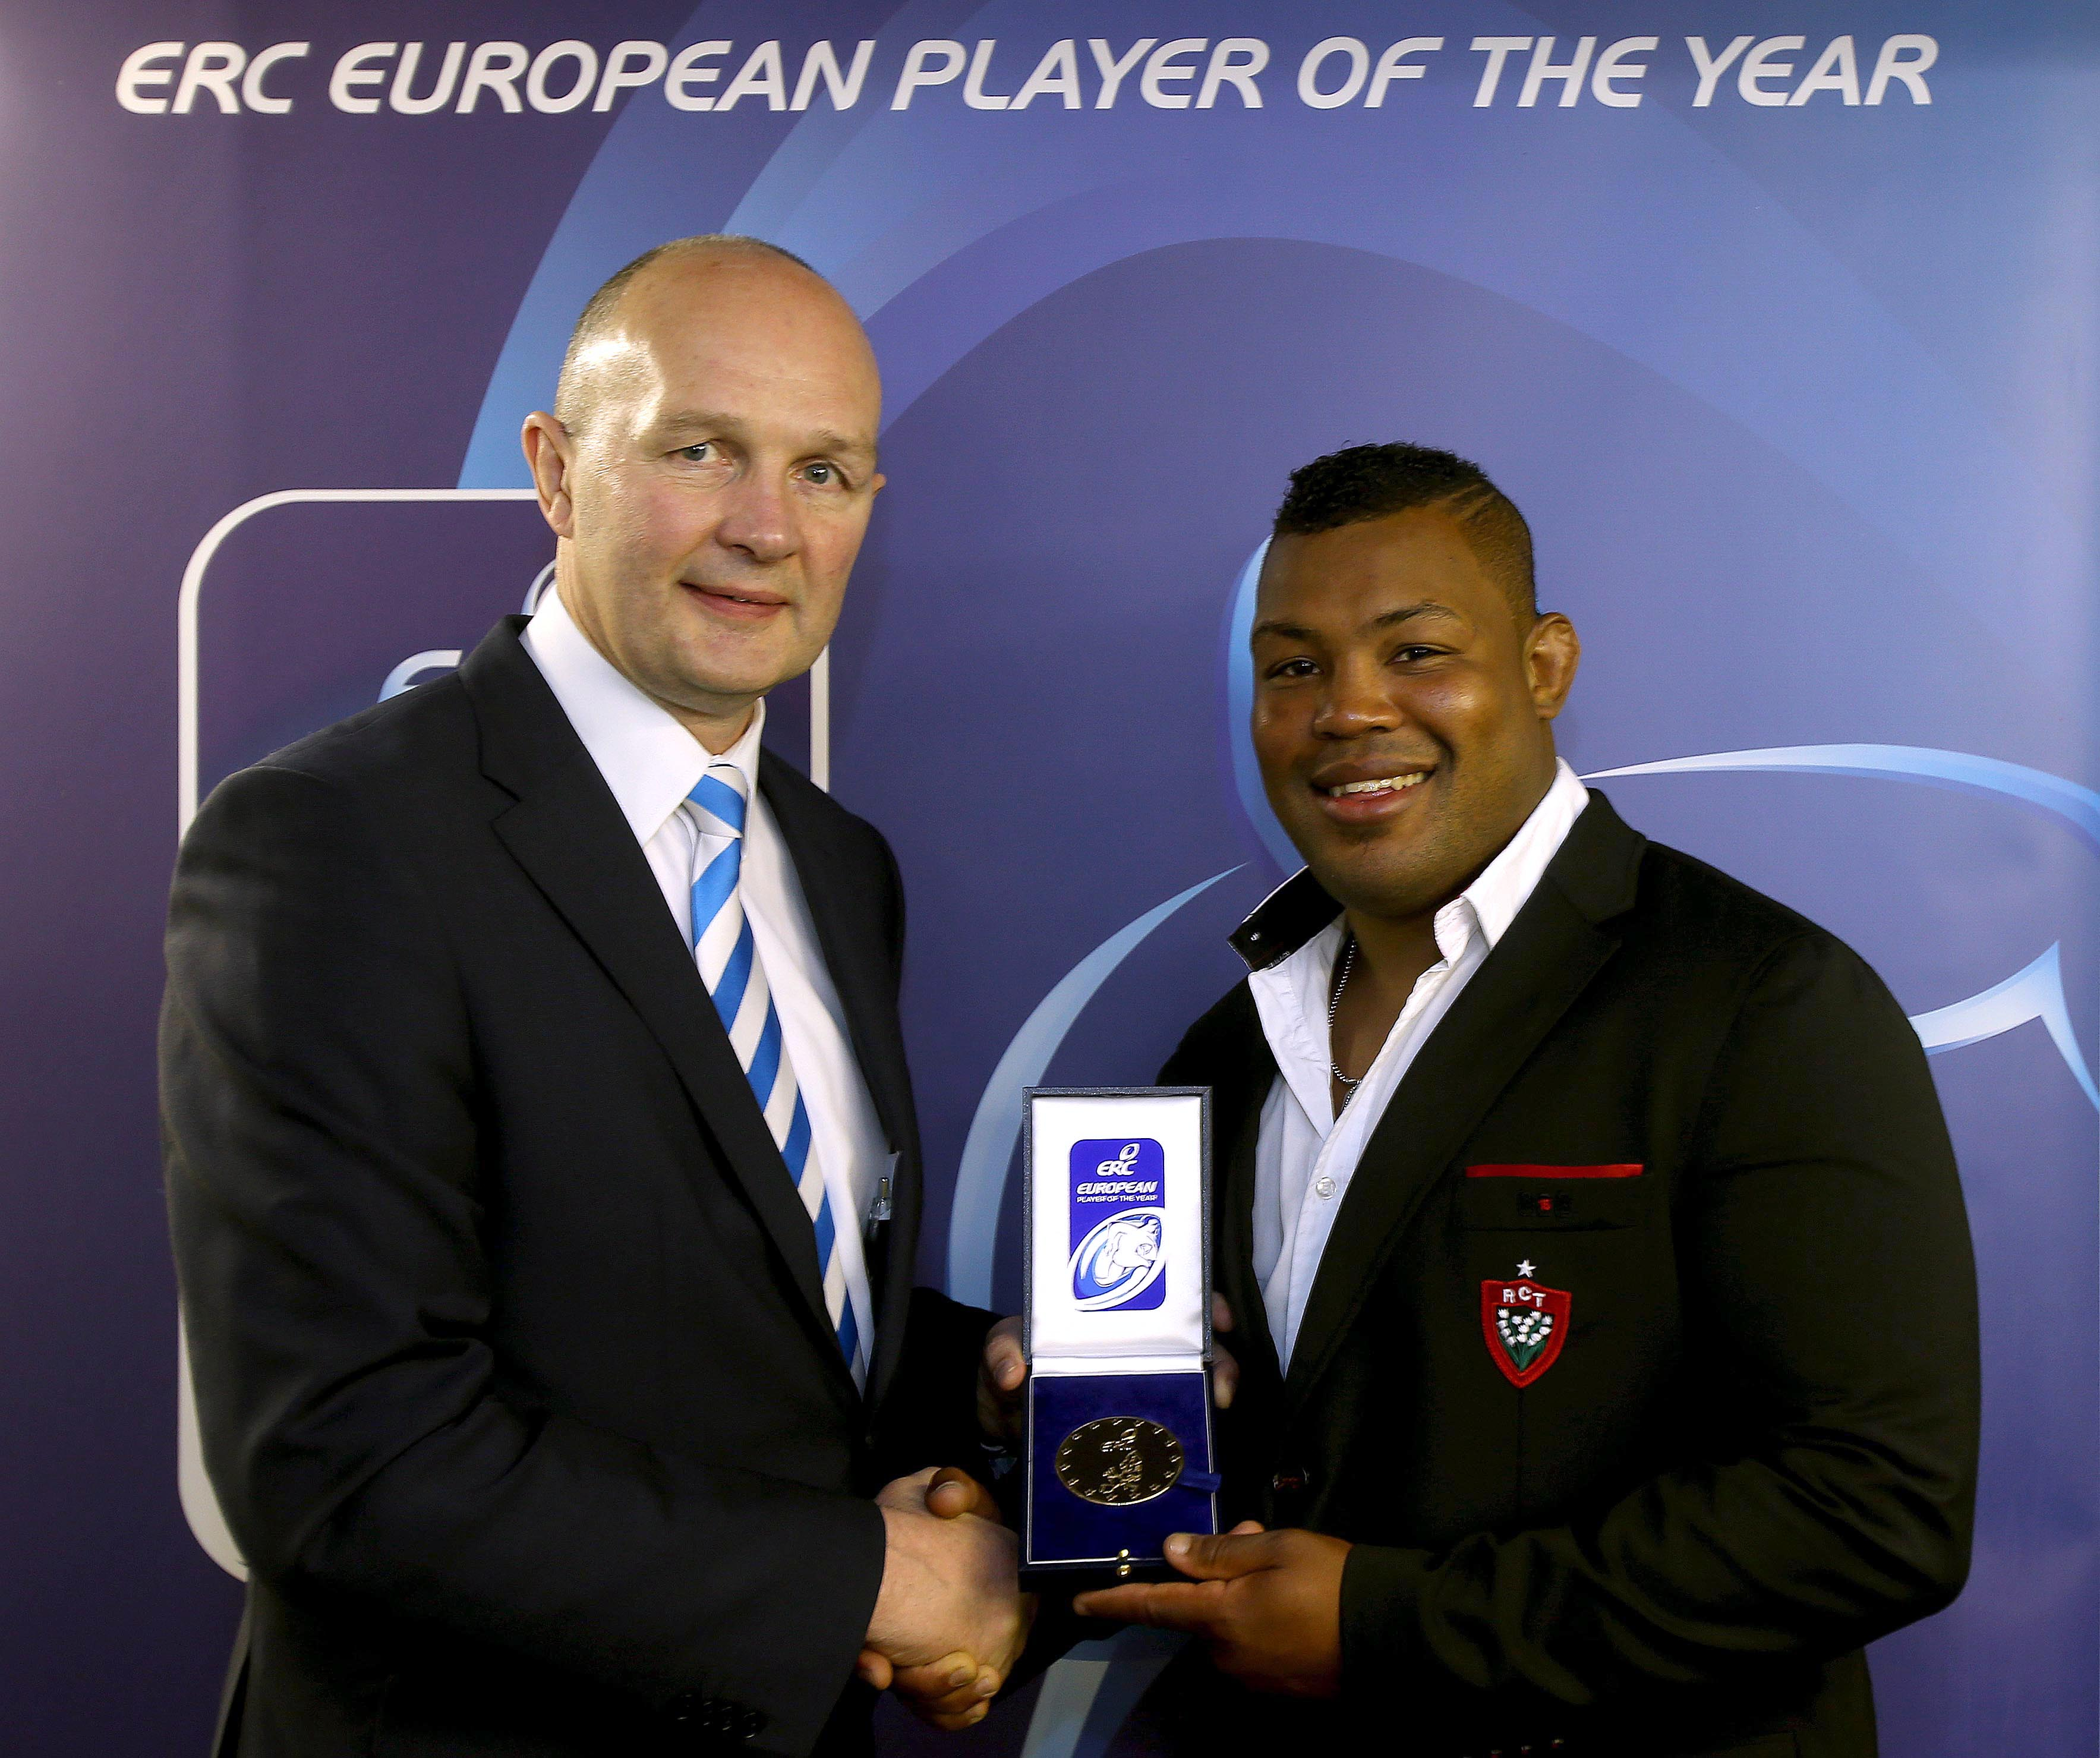 1 ERC European Player of the Year